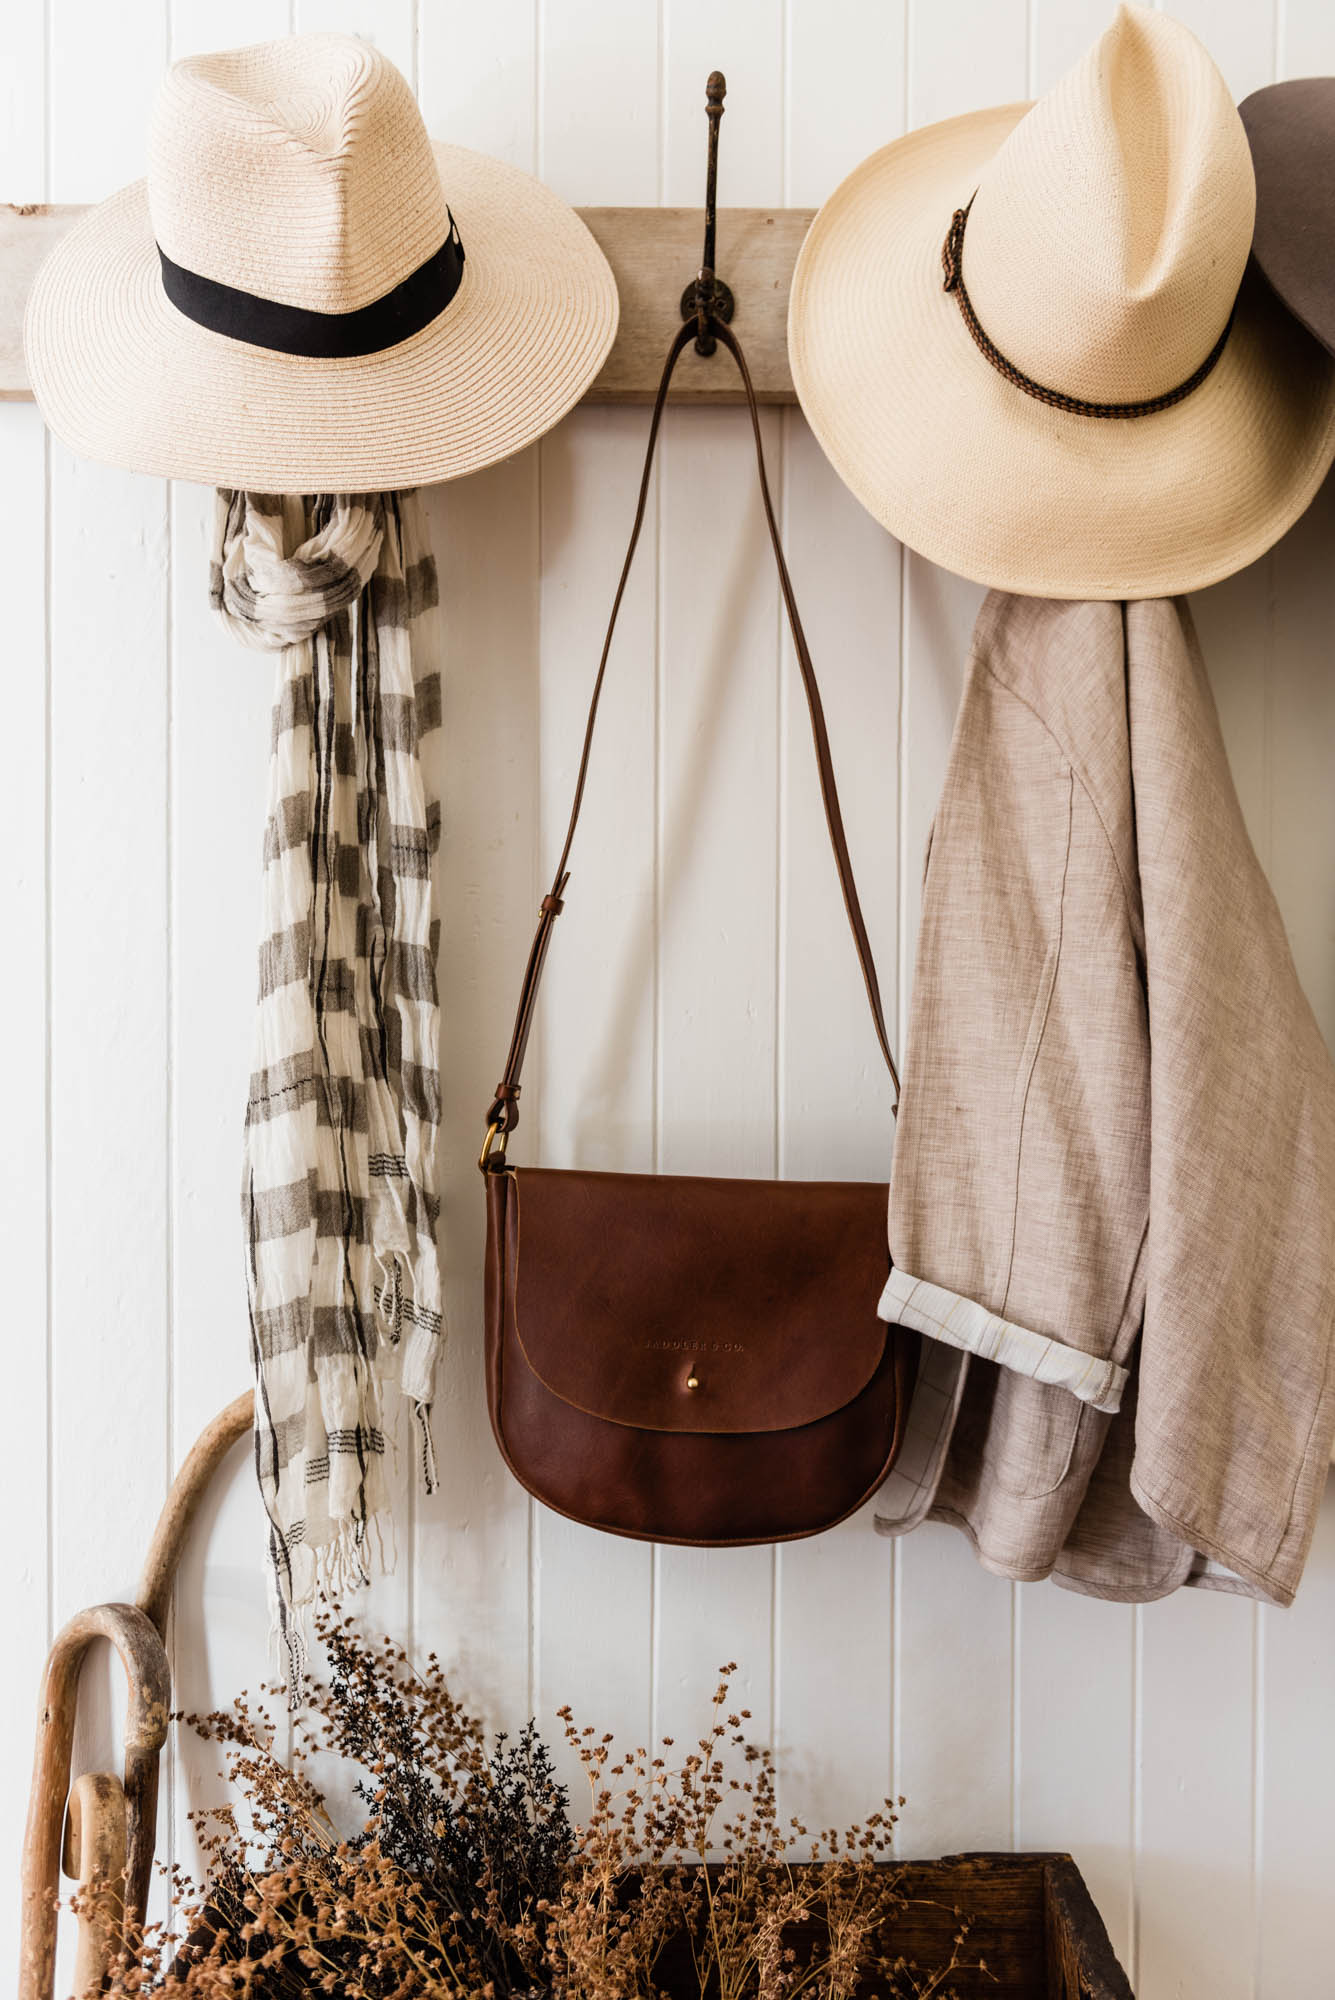 Web-hannah puechmari photography-albert and grace styling -saddler and co leather-8879.jpg